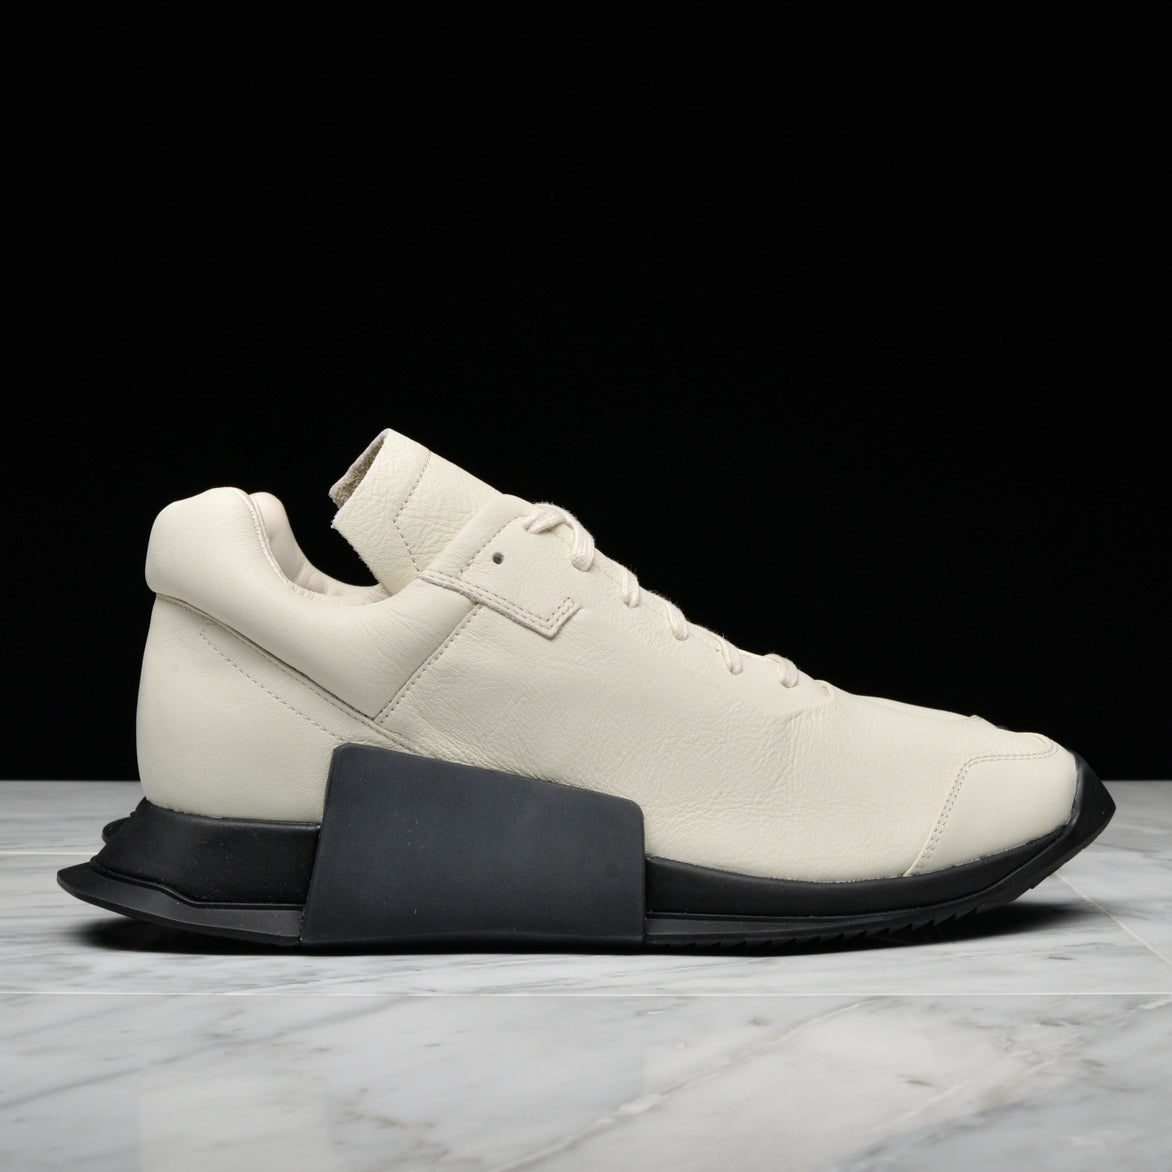 64754d0517b RICK OWENS x ADIDAS RO LEVEL RUNNER LOW II - MILK ...